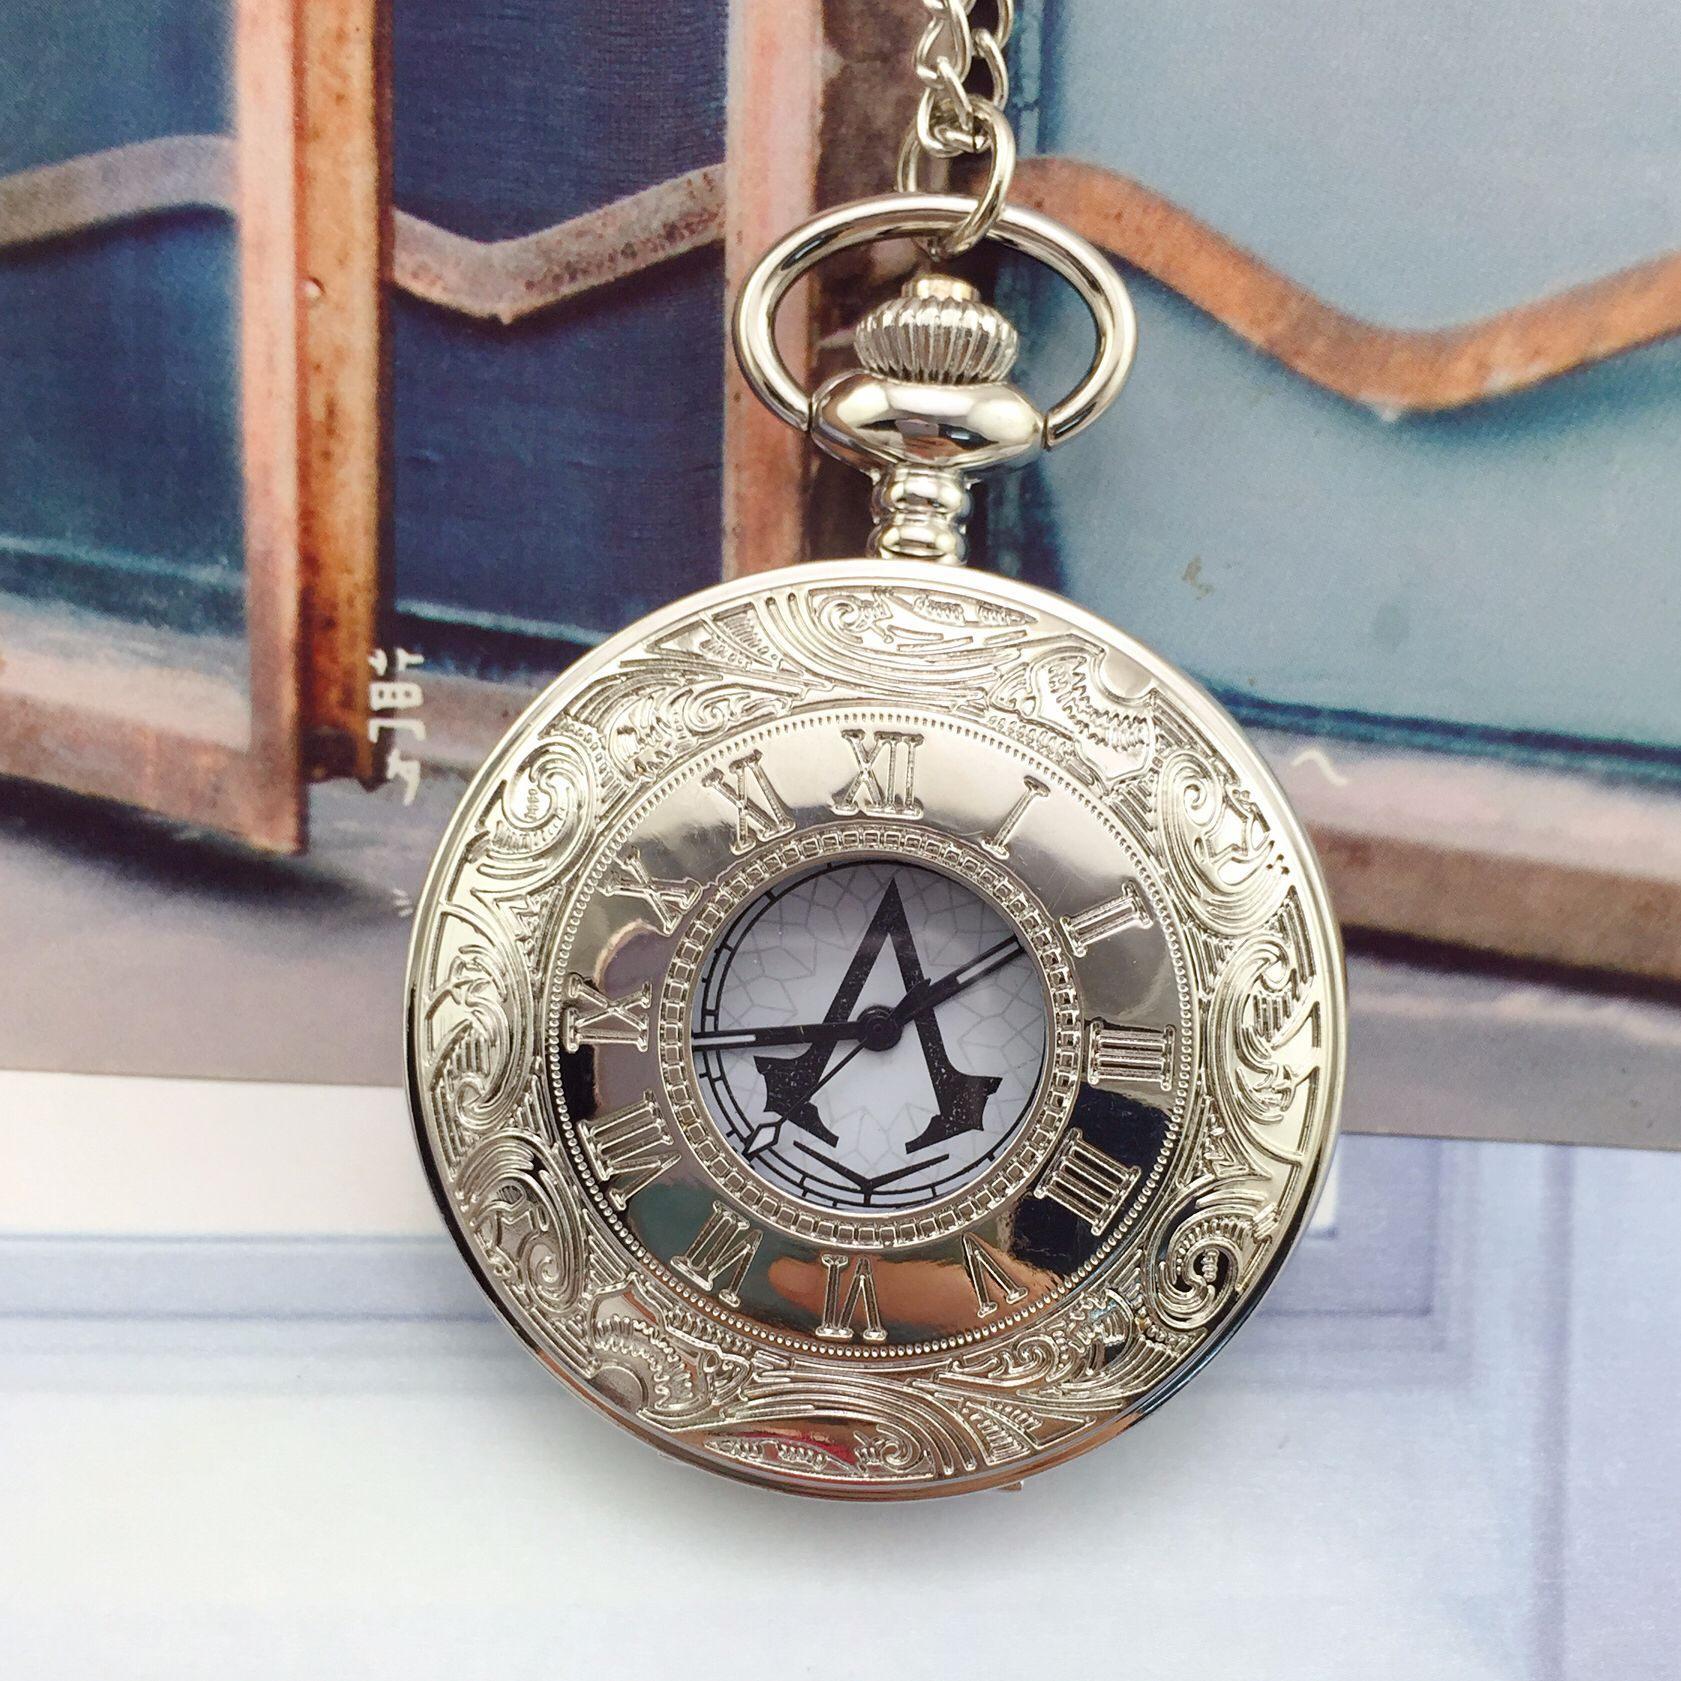 2018 AliExpress Hot Selling Assassin's Creed Assassin Lawrence Pocket Watch Retro Necklace 2-Color Pocket Watch Thallium Table